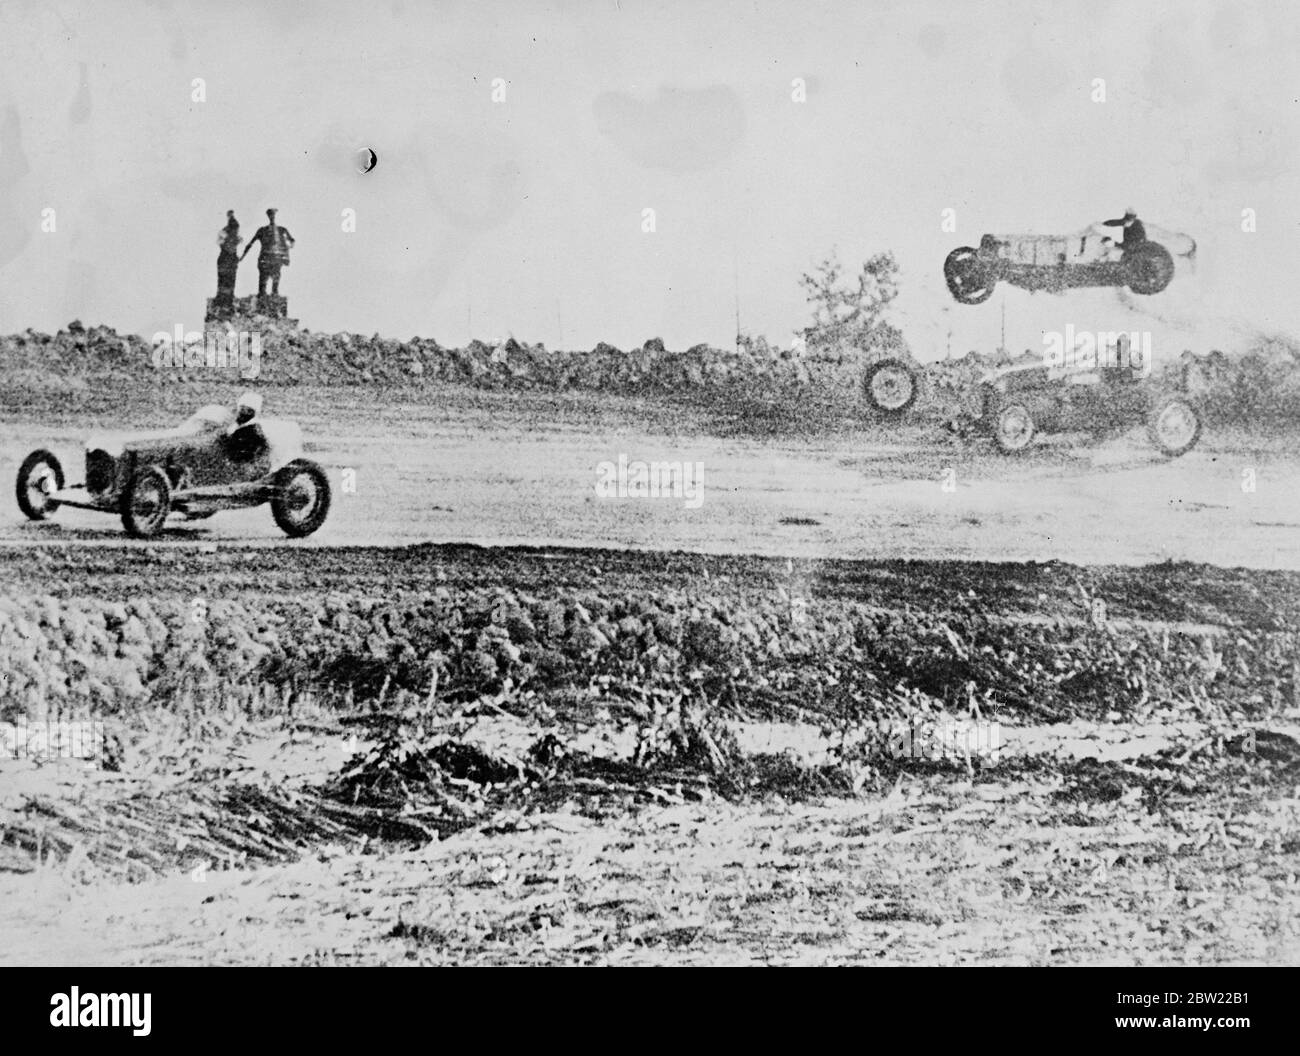 1930s Racing Cars High Resolution Stock Photography and Images - Alamy